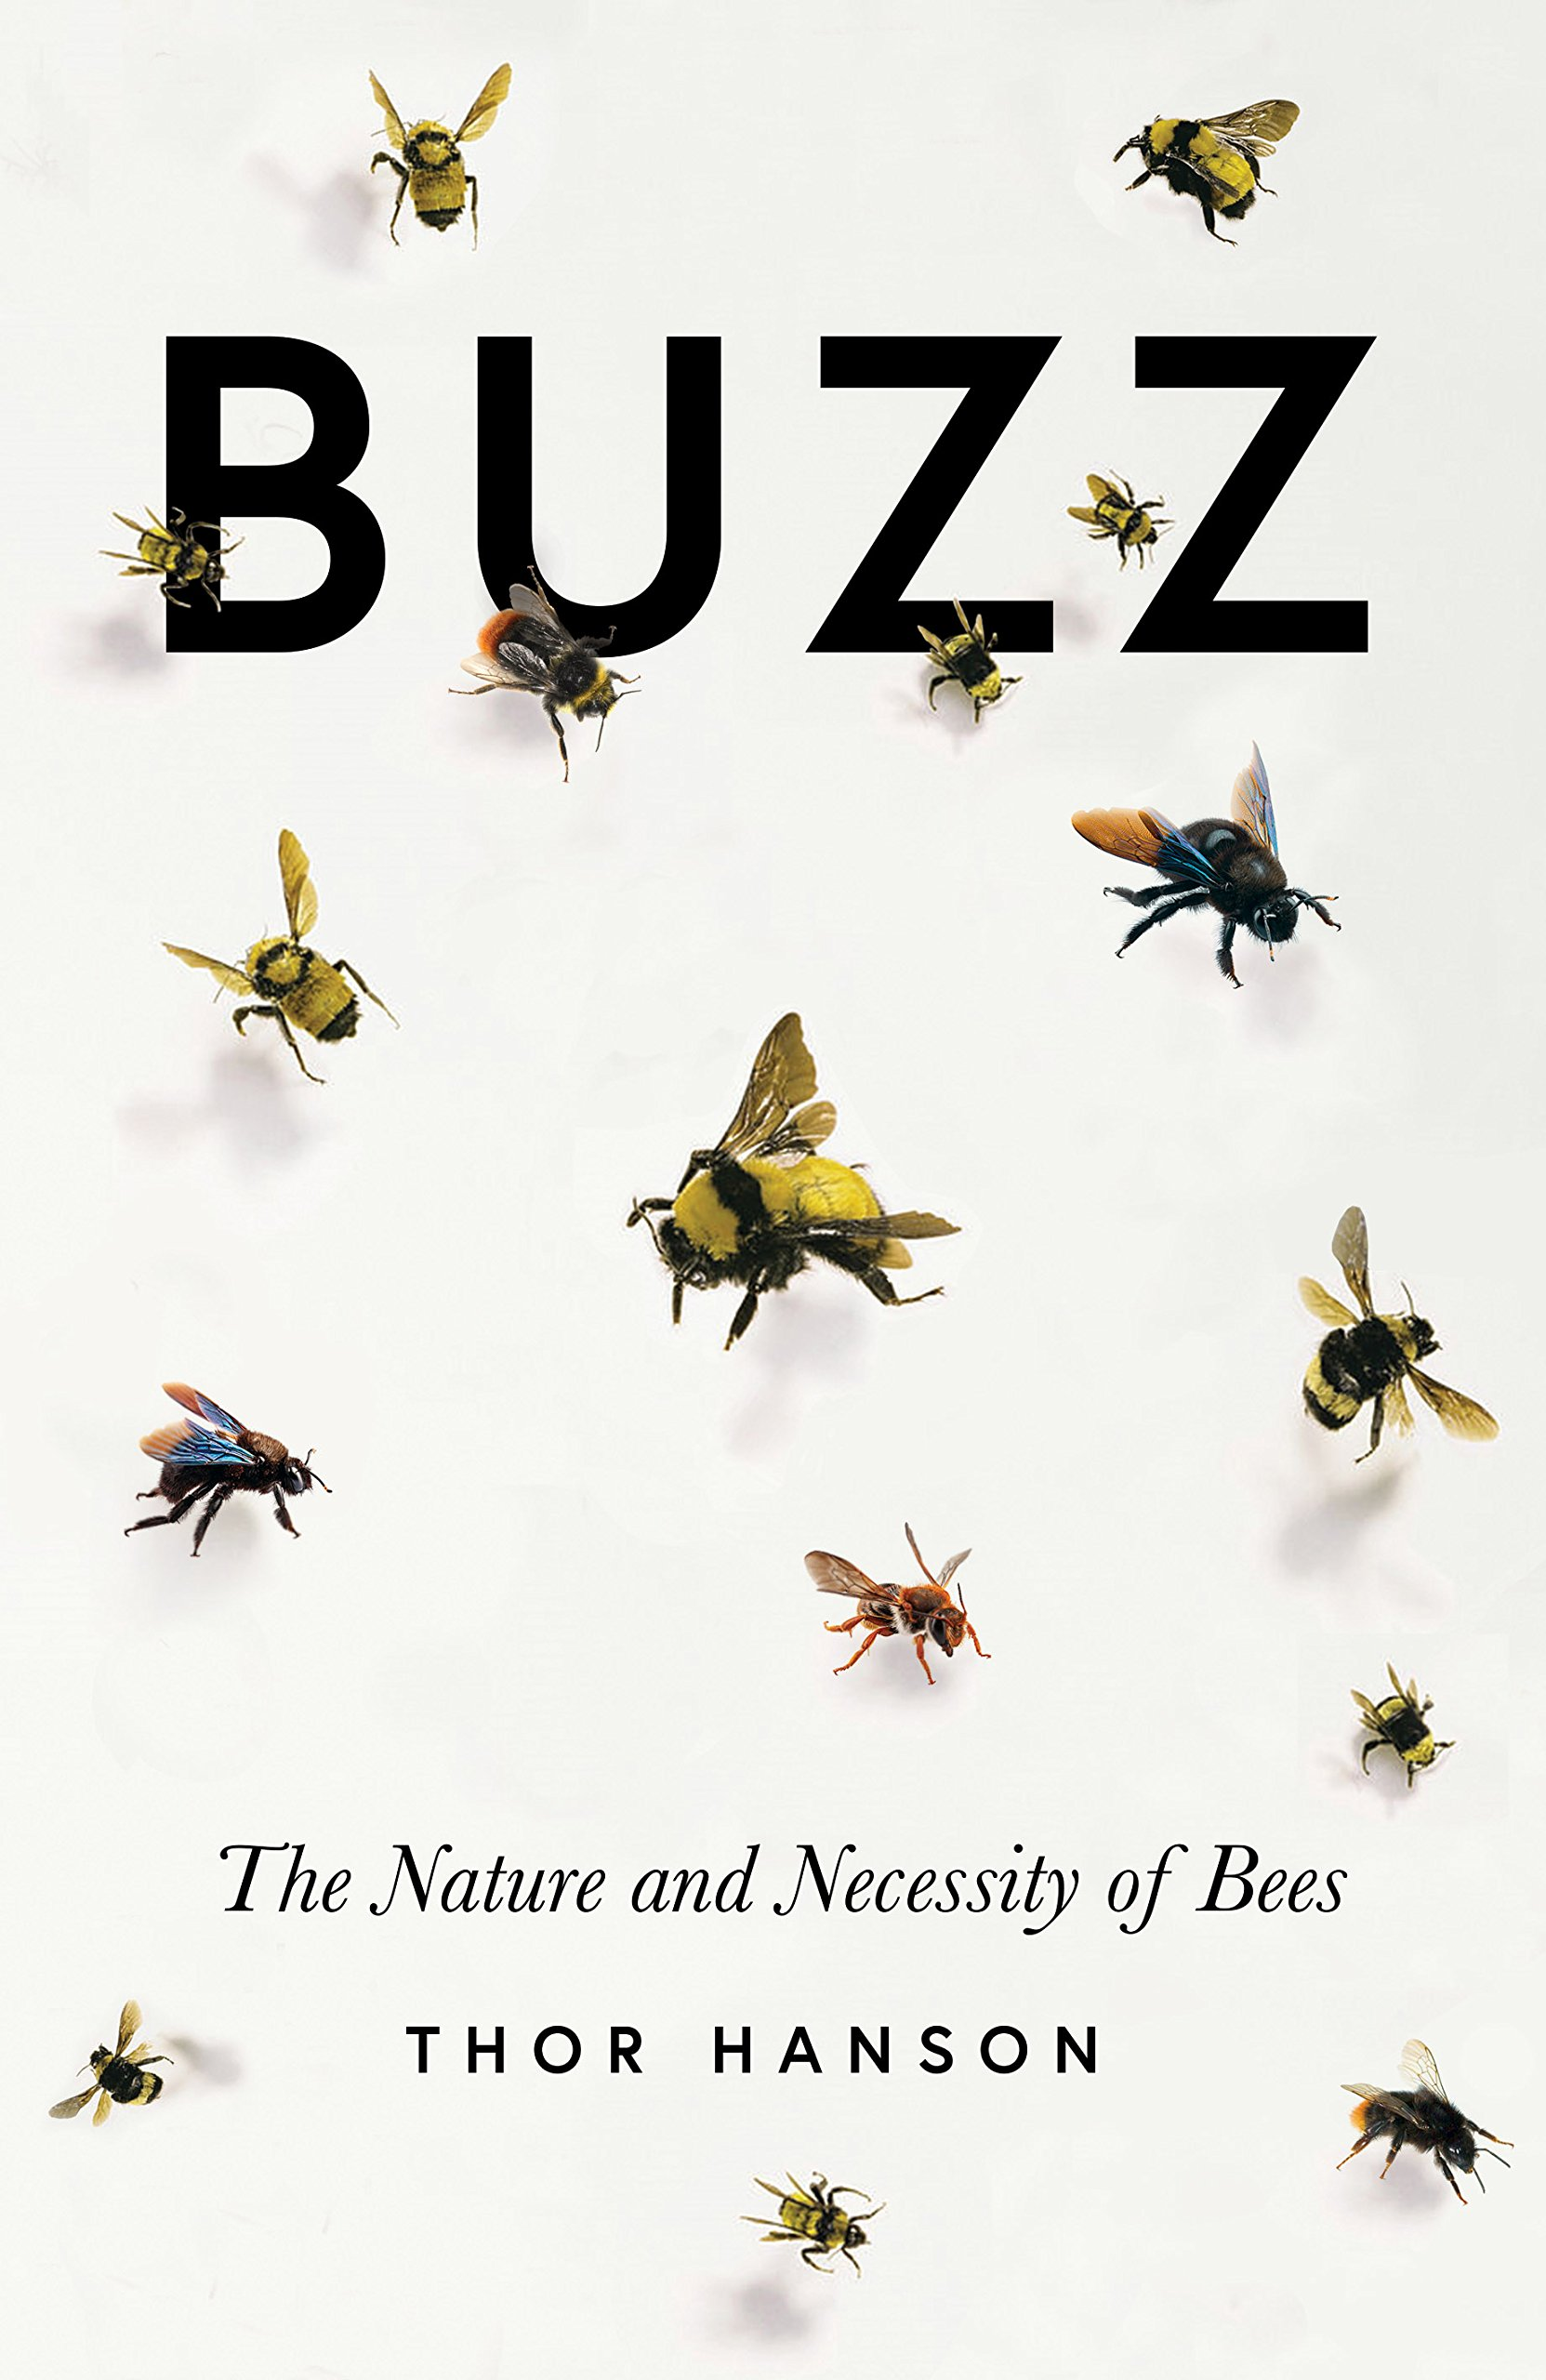 Promotional image for Martin Bandyke Under Covers for January 2019: Martin interviews Thor Hanson, author of Buzz: The Nature and Necessity of Bees. podcast